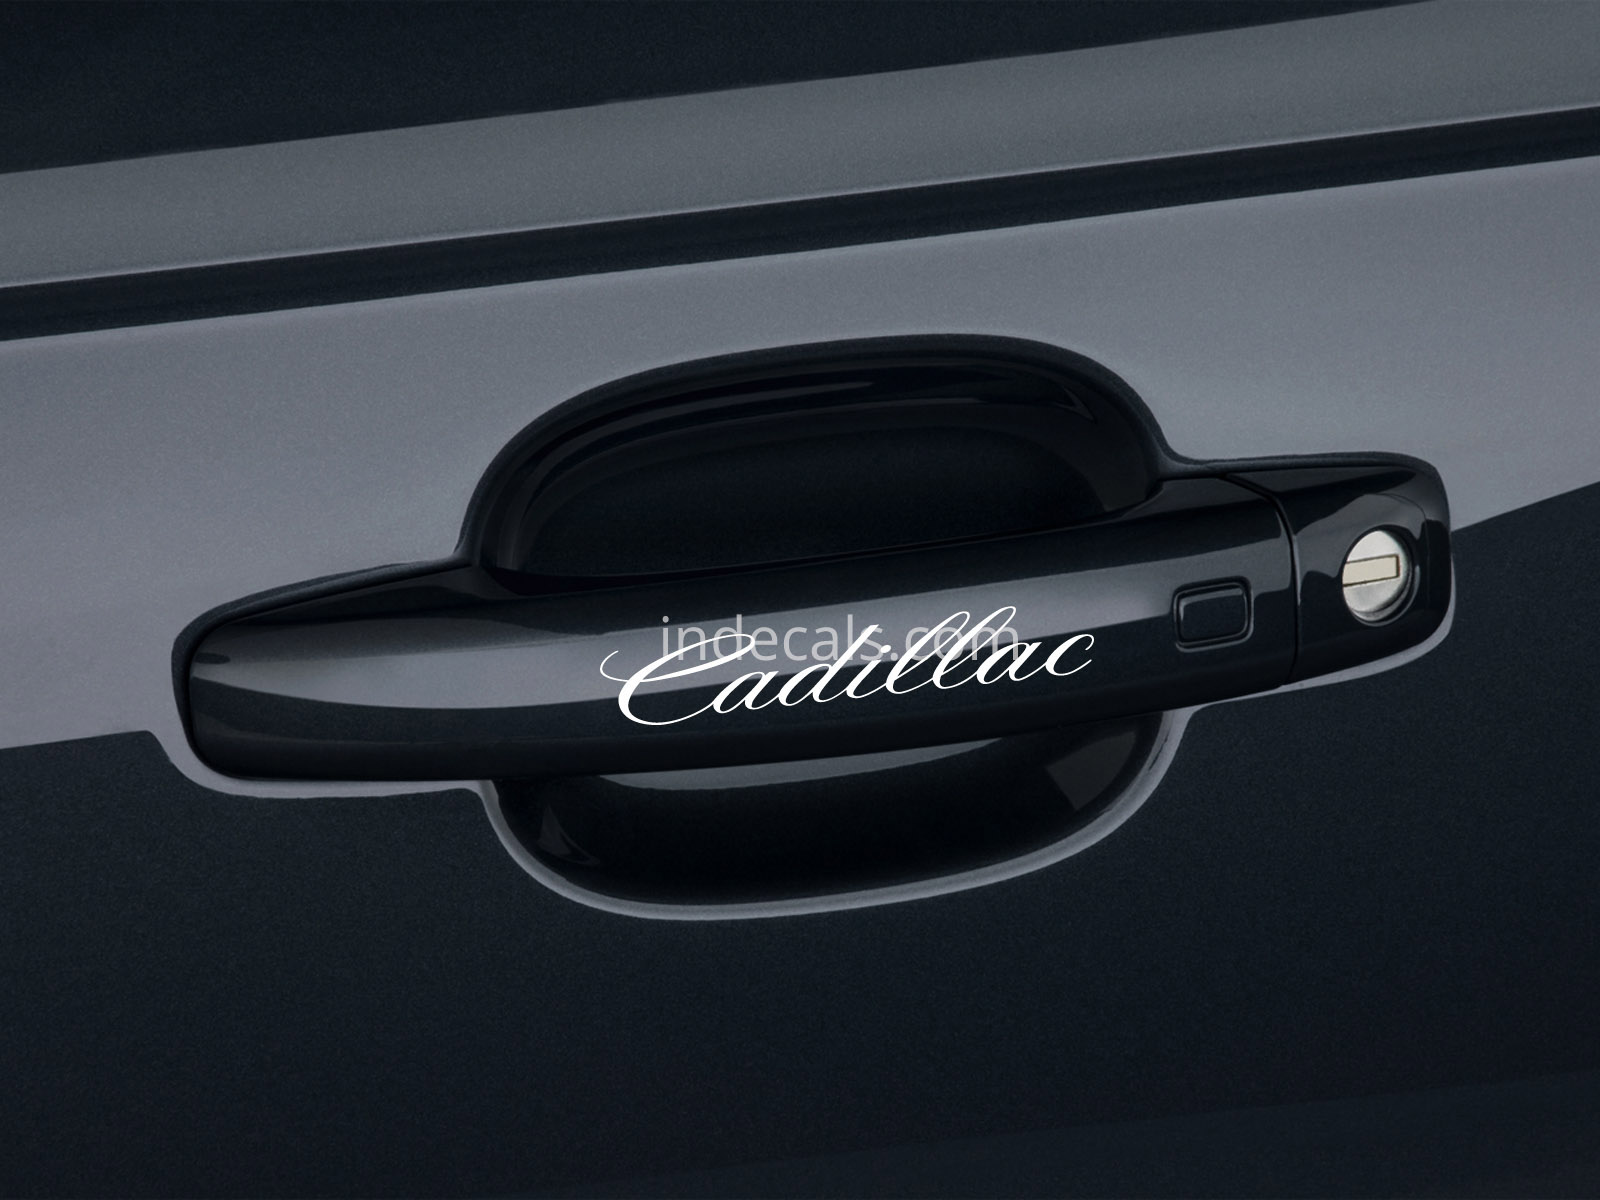 6 x Cadillac Stickers for Door Handles - White